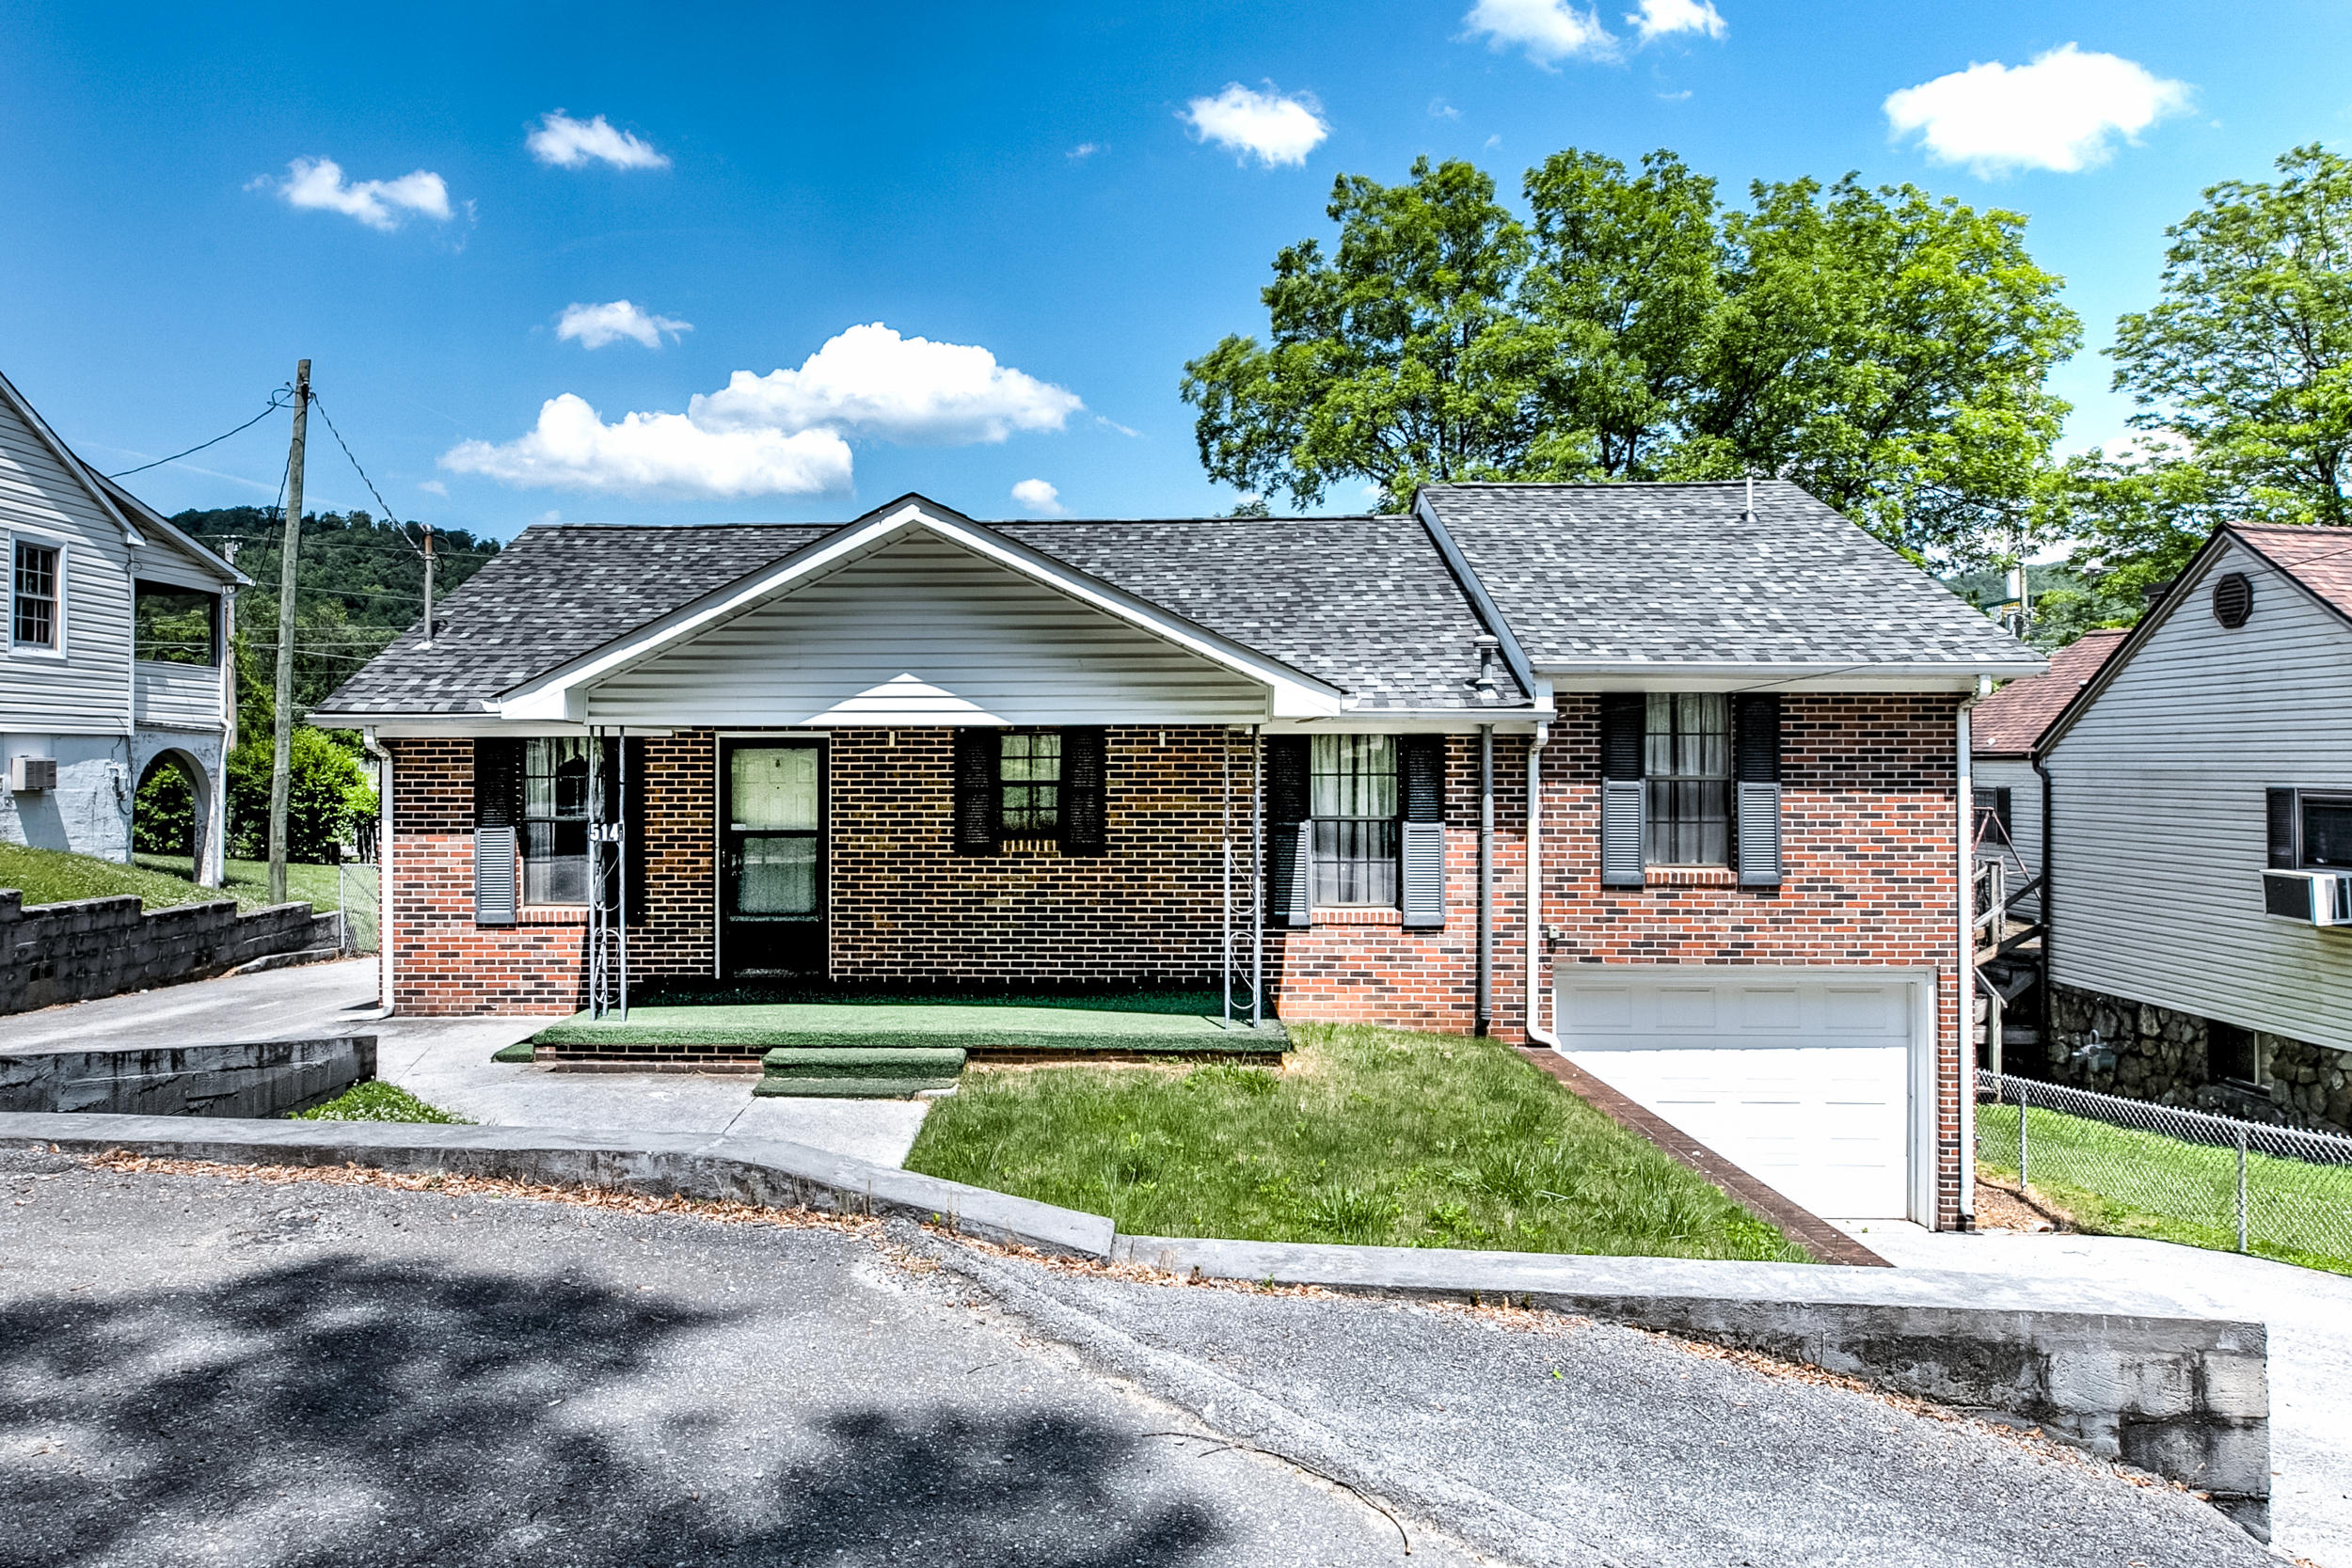 20190528000338788278000000-o Rocky Top anderson county homes for sale